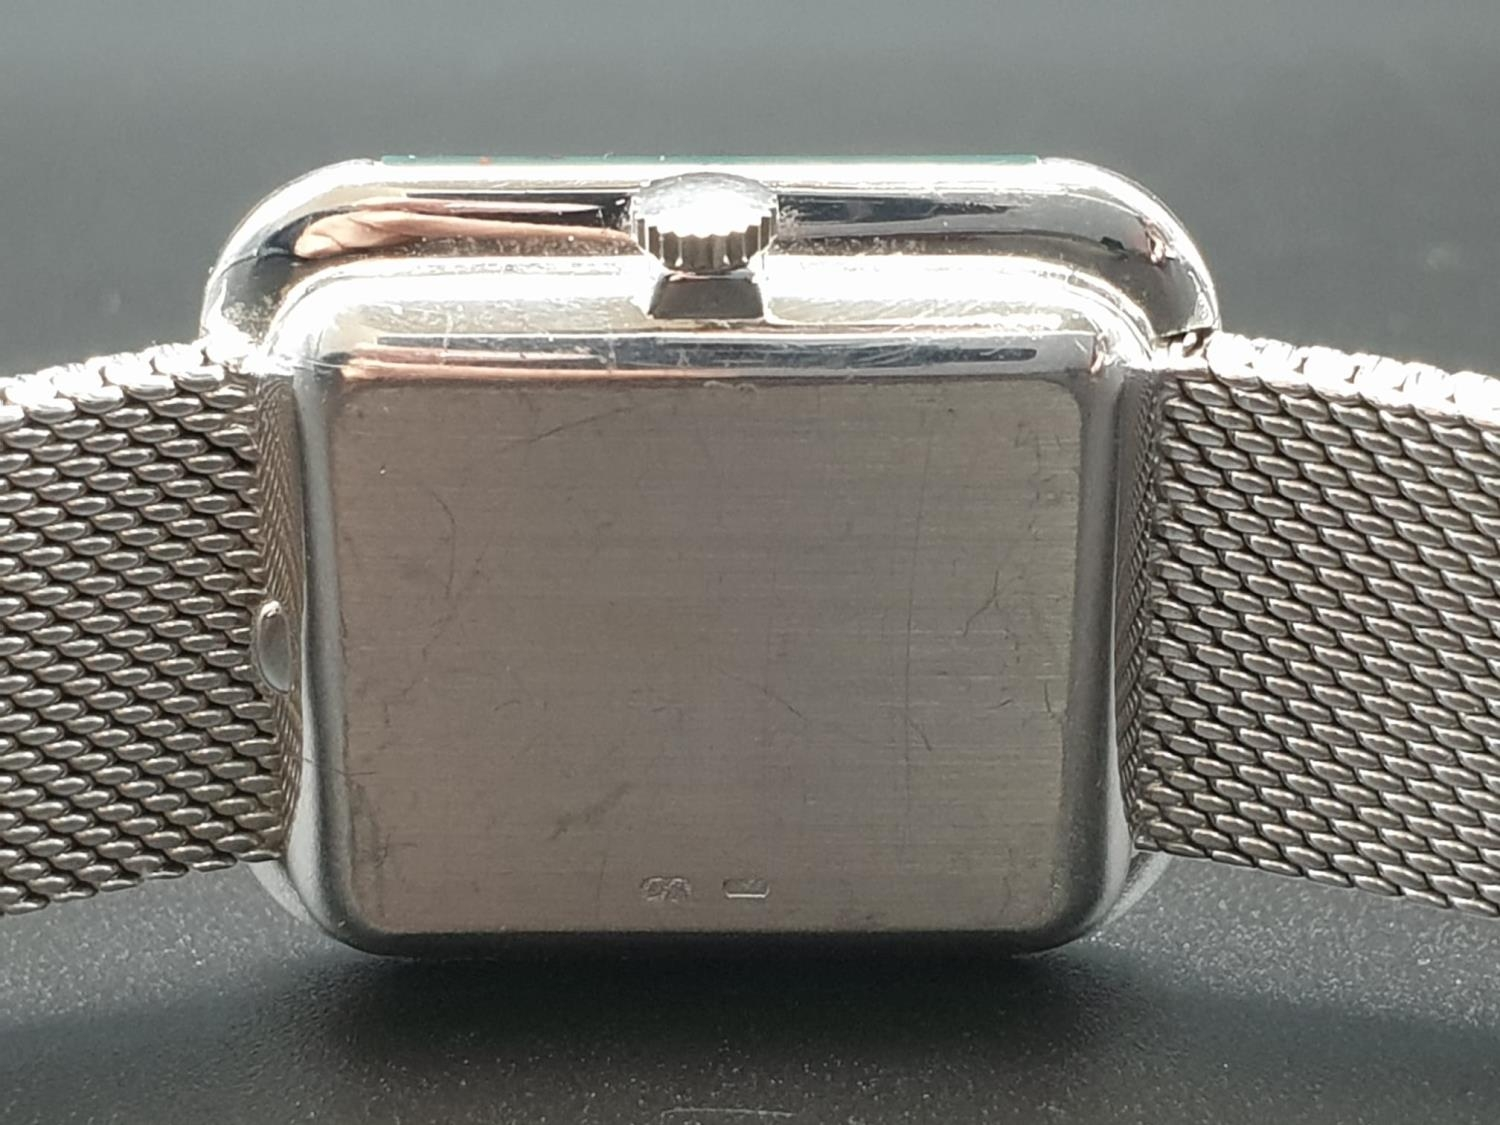 AN 18K WHITE GOLD DRESS WATCH WITH HALF DIAMOND BEZEL AND SOLID GOLD STRAP. 26MM - Image 10 of 12